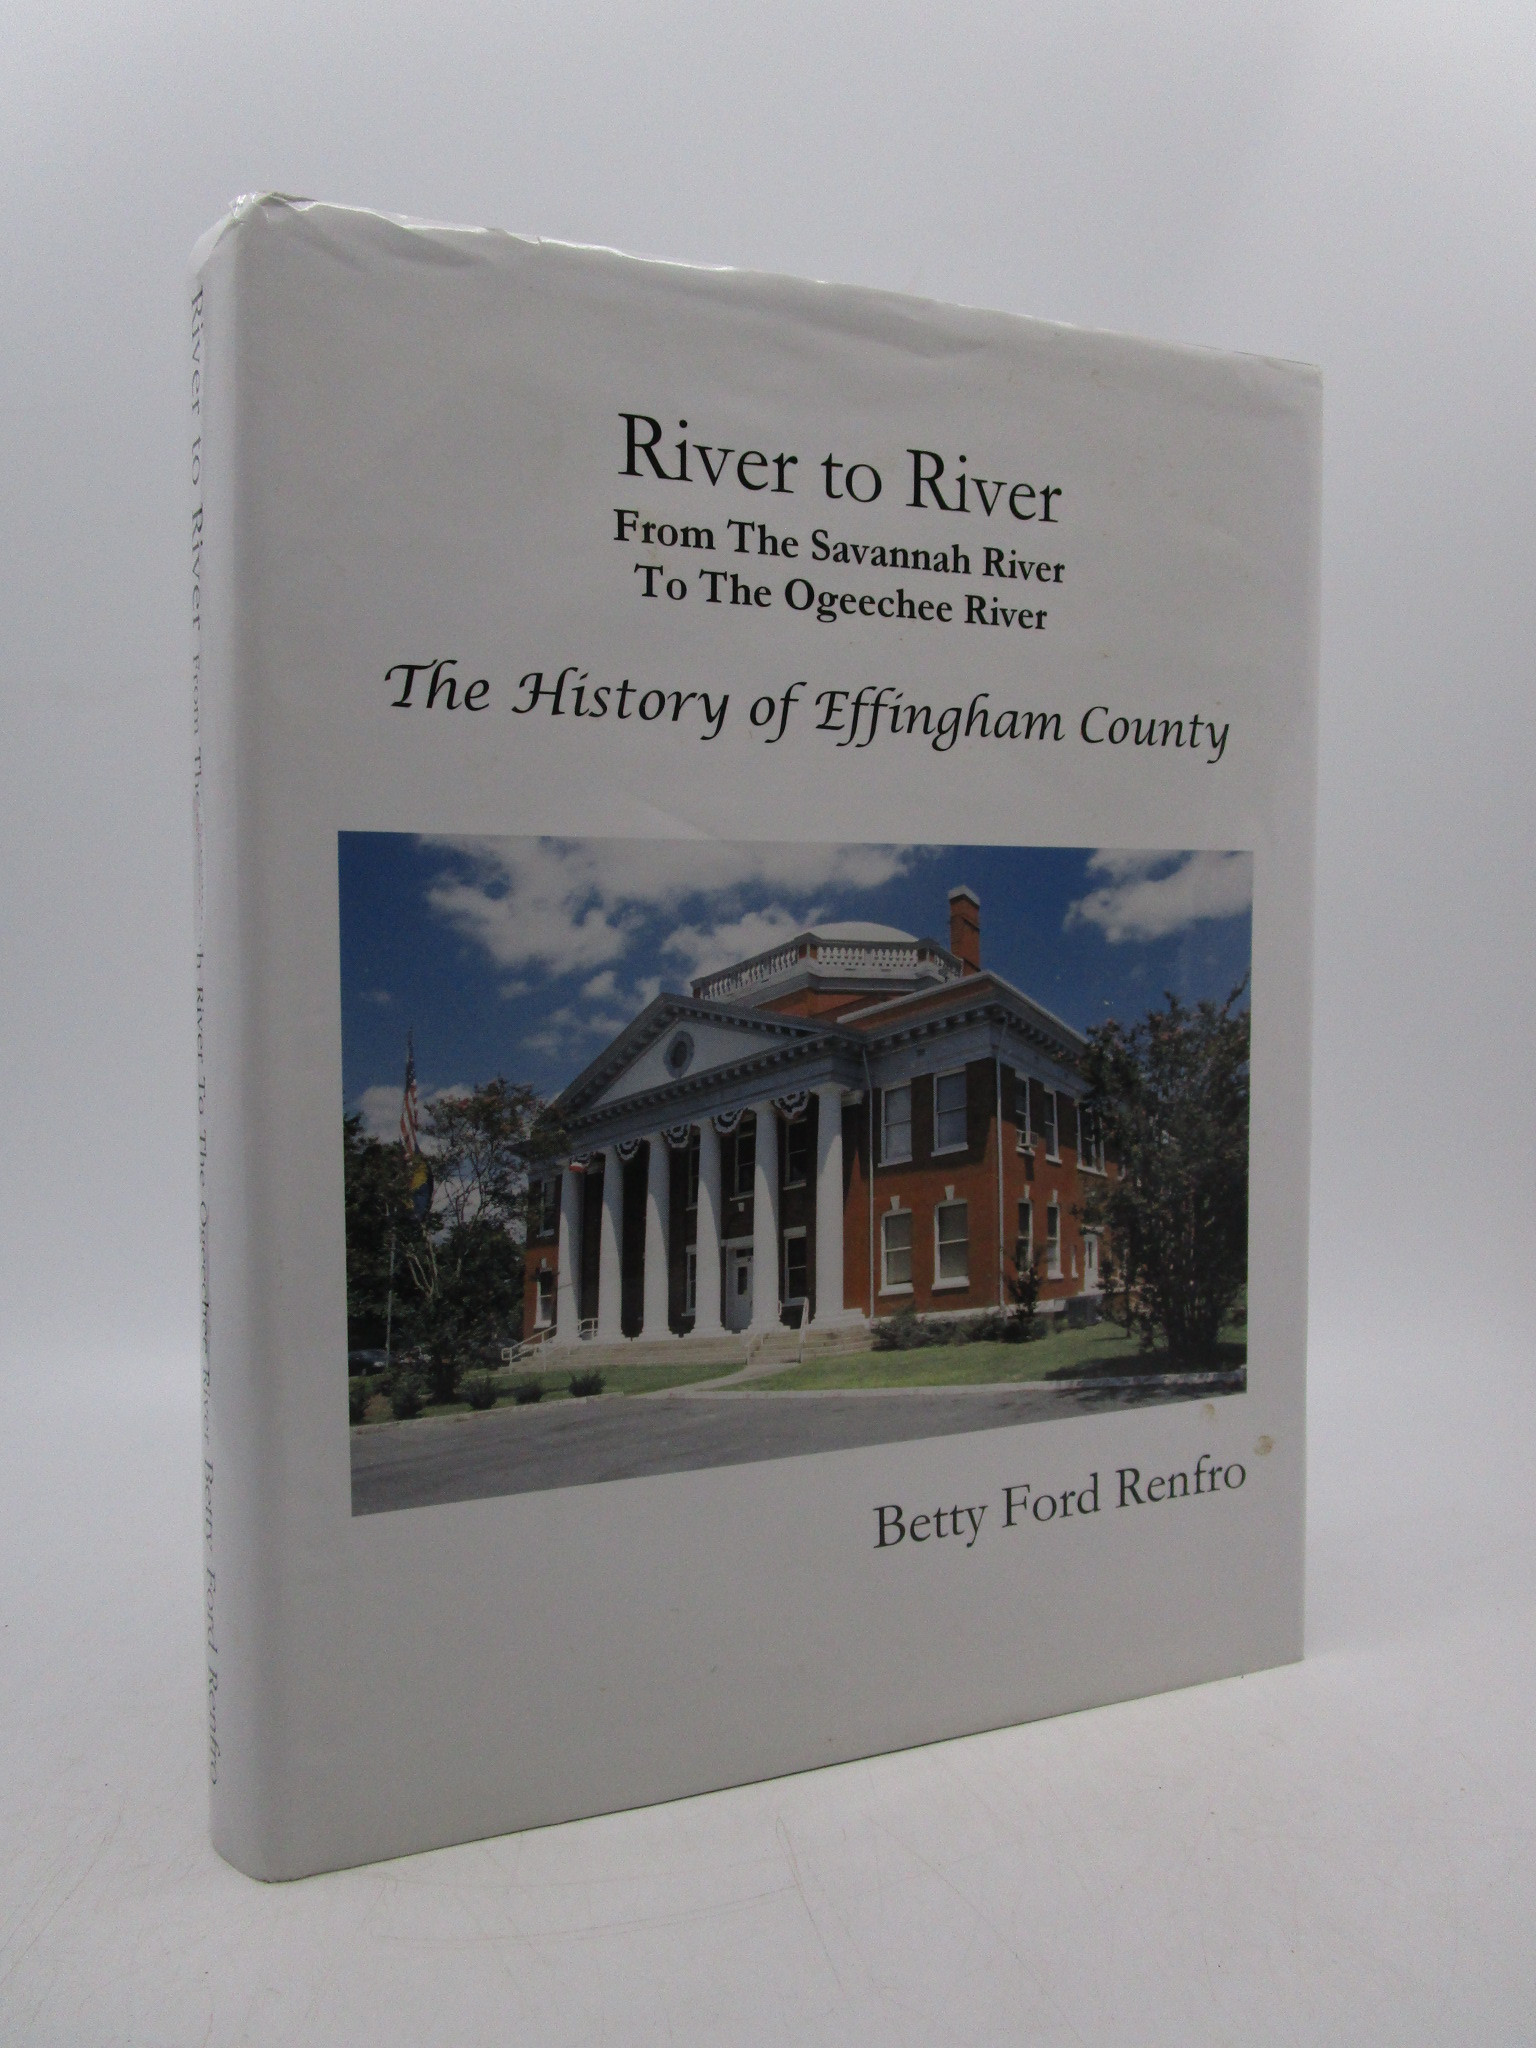 Image for River to River. From the Savannah River to the Ogeechee River. The History of Effingham County (Signed)